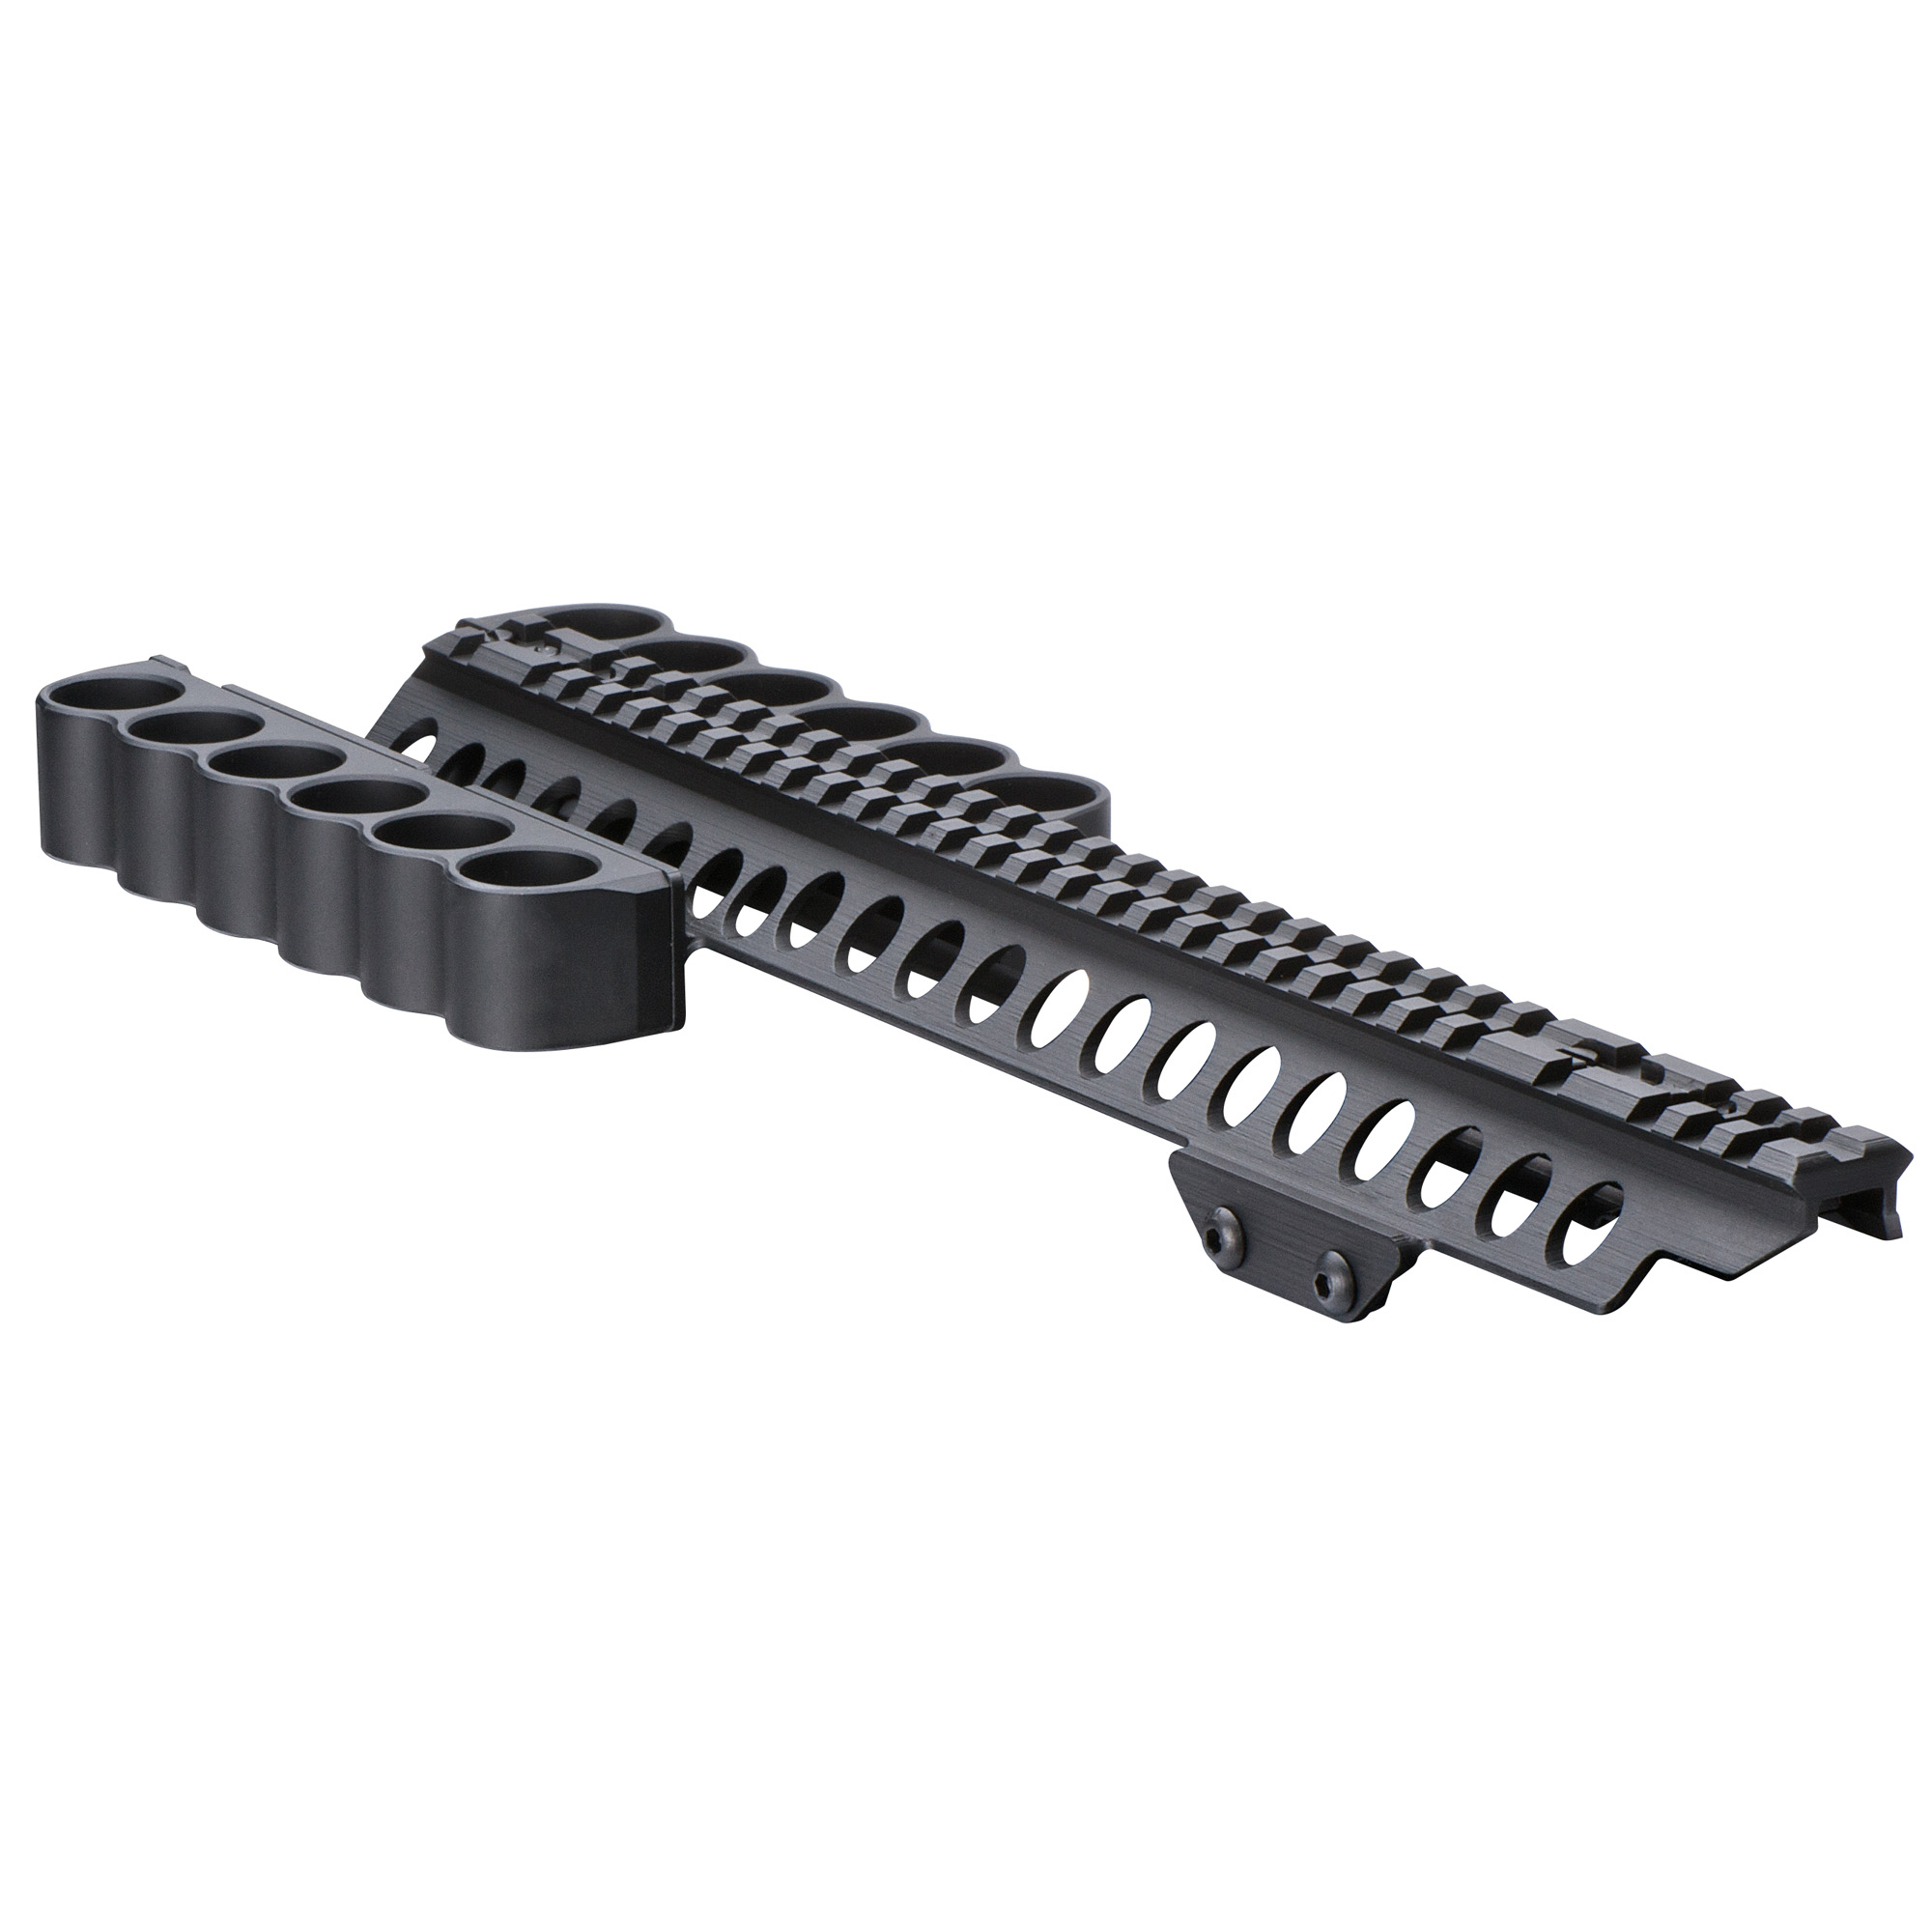 SureShell Aluminum Shotshell Carriers with Rail are machined from 6061-T6 aluminum and use Mesa Tactical's innovative rubber friction retention system to firmly and reliable hold shells in place until needed.